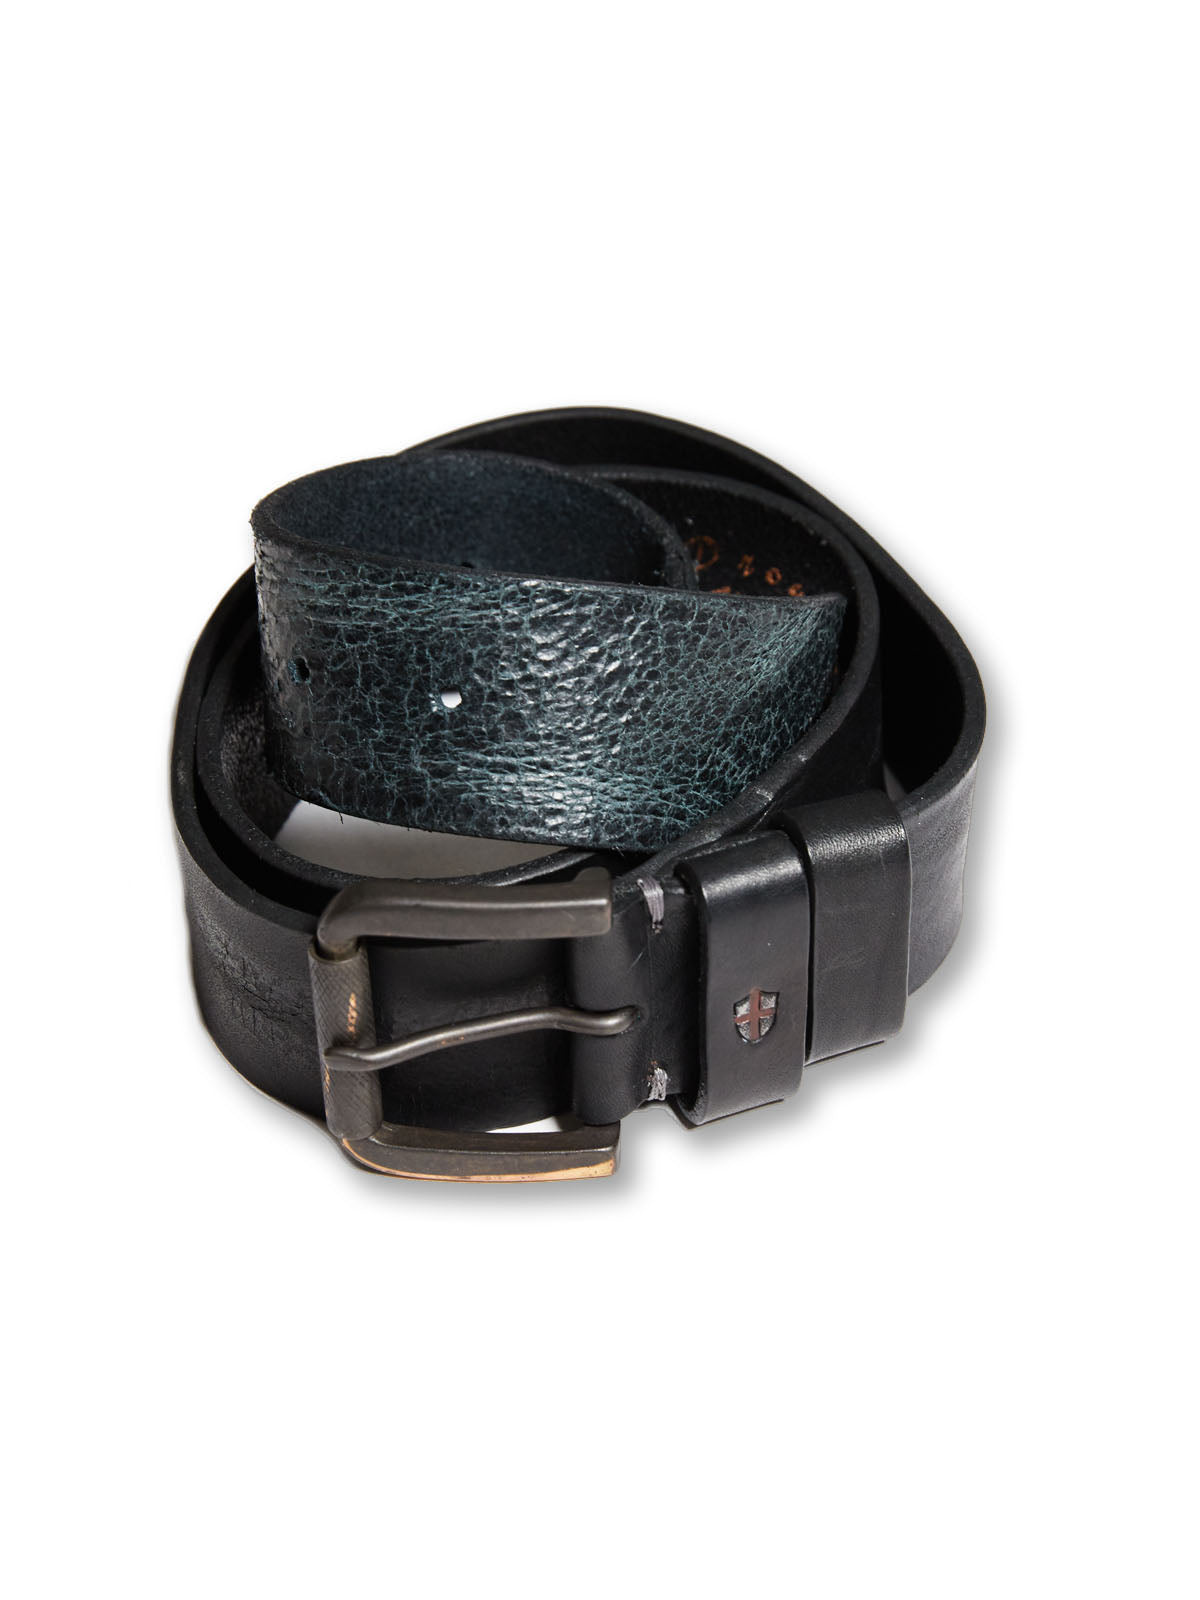 Piceno Leather Belt Black